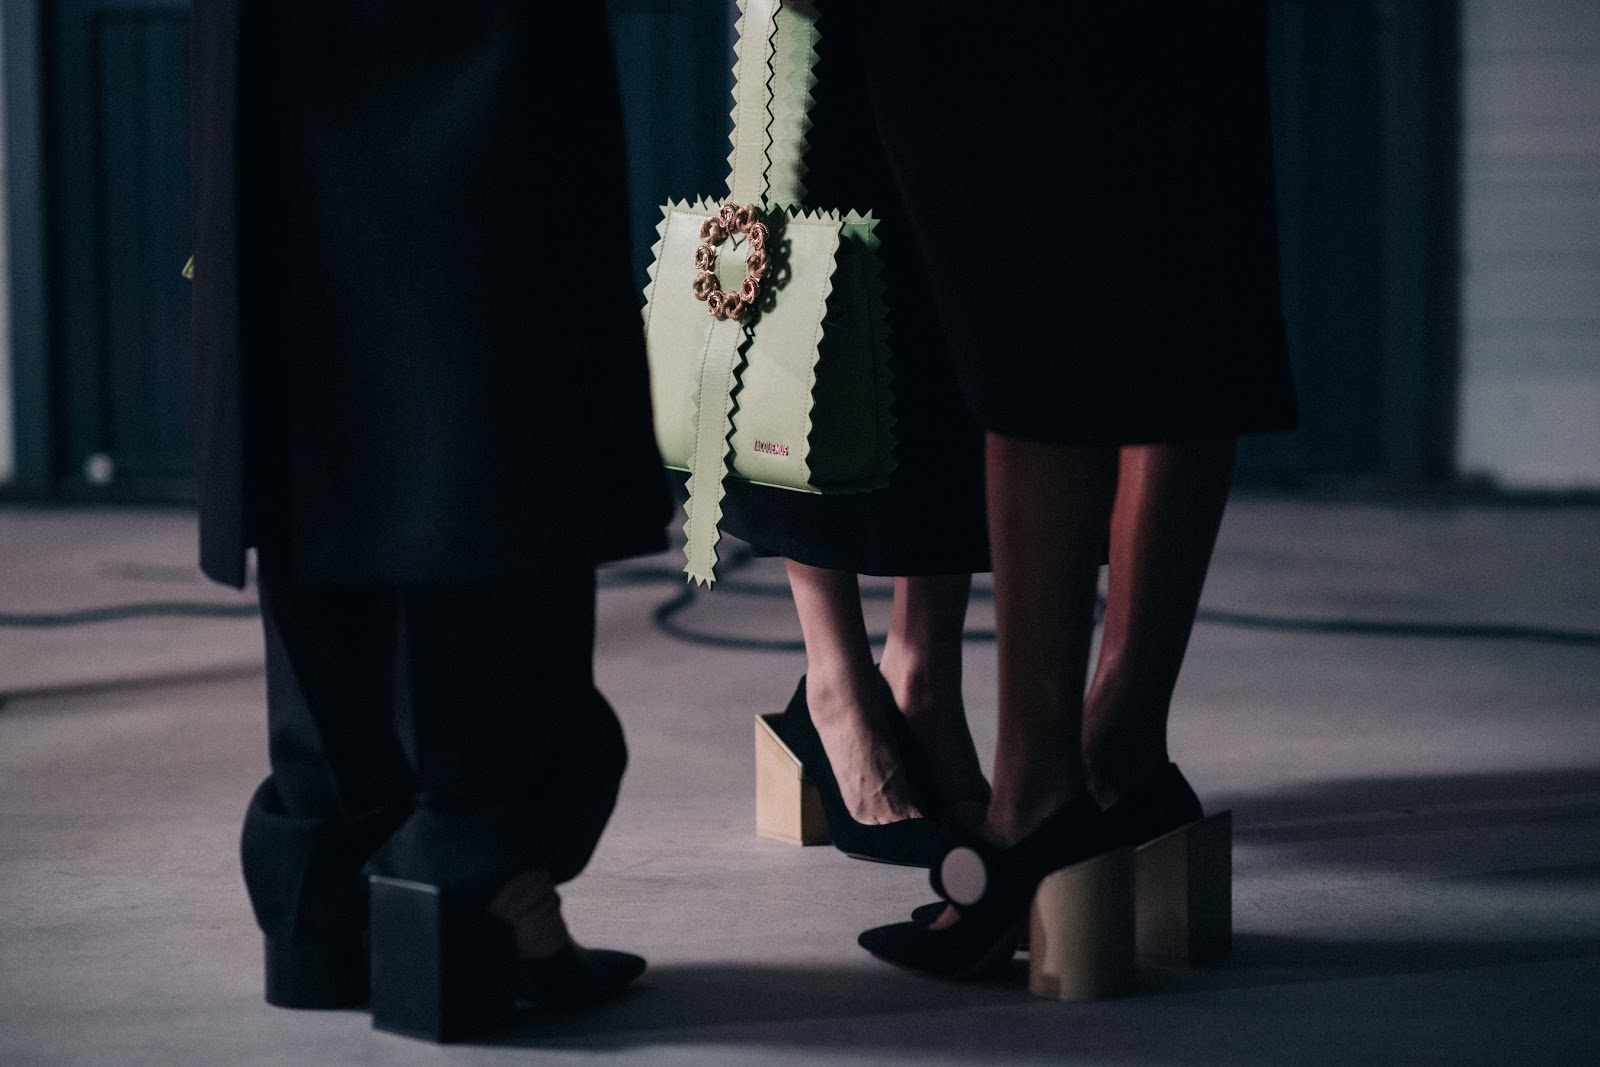 Green Jacquemus bag with details